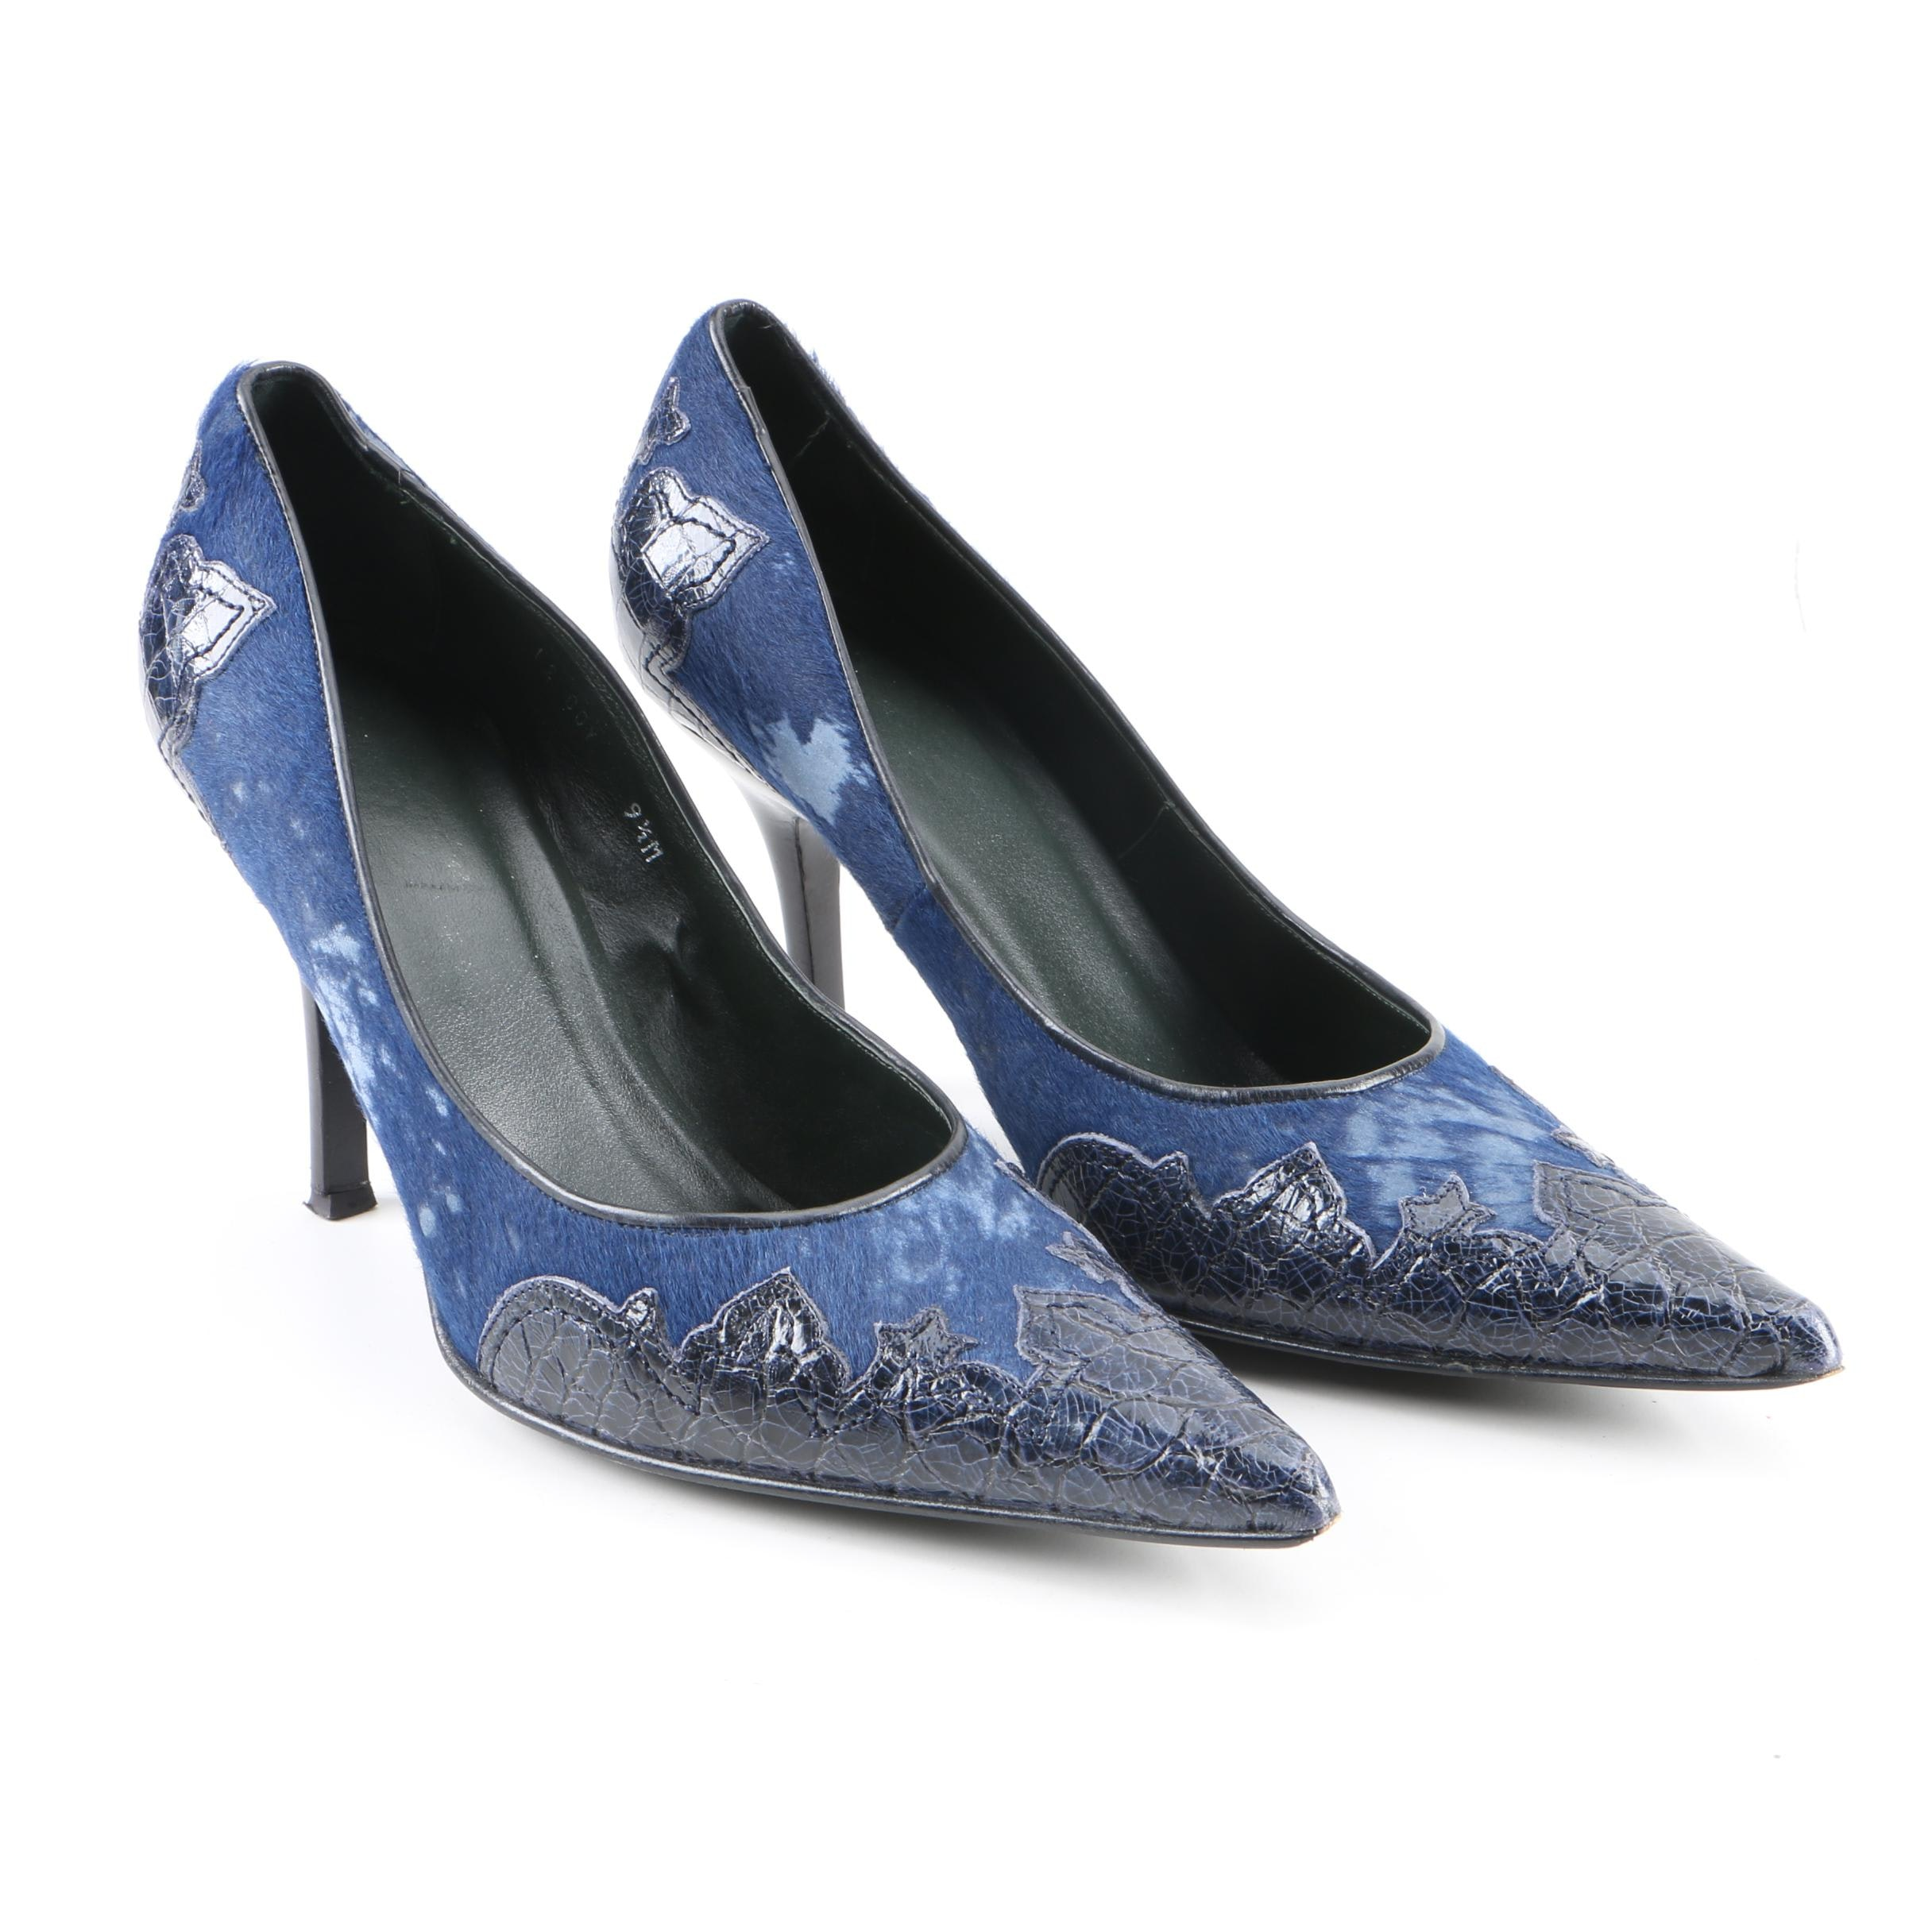 Donald J Pliner Dyed Blue Calf Hair Embossed Leather High Heels